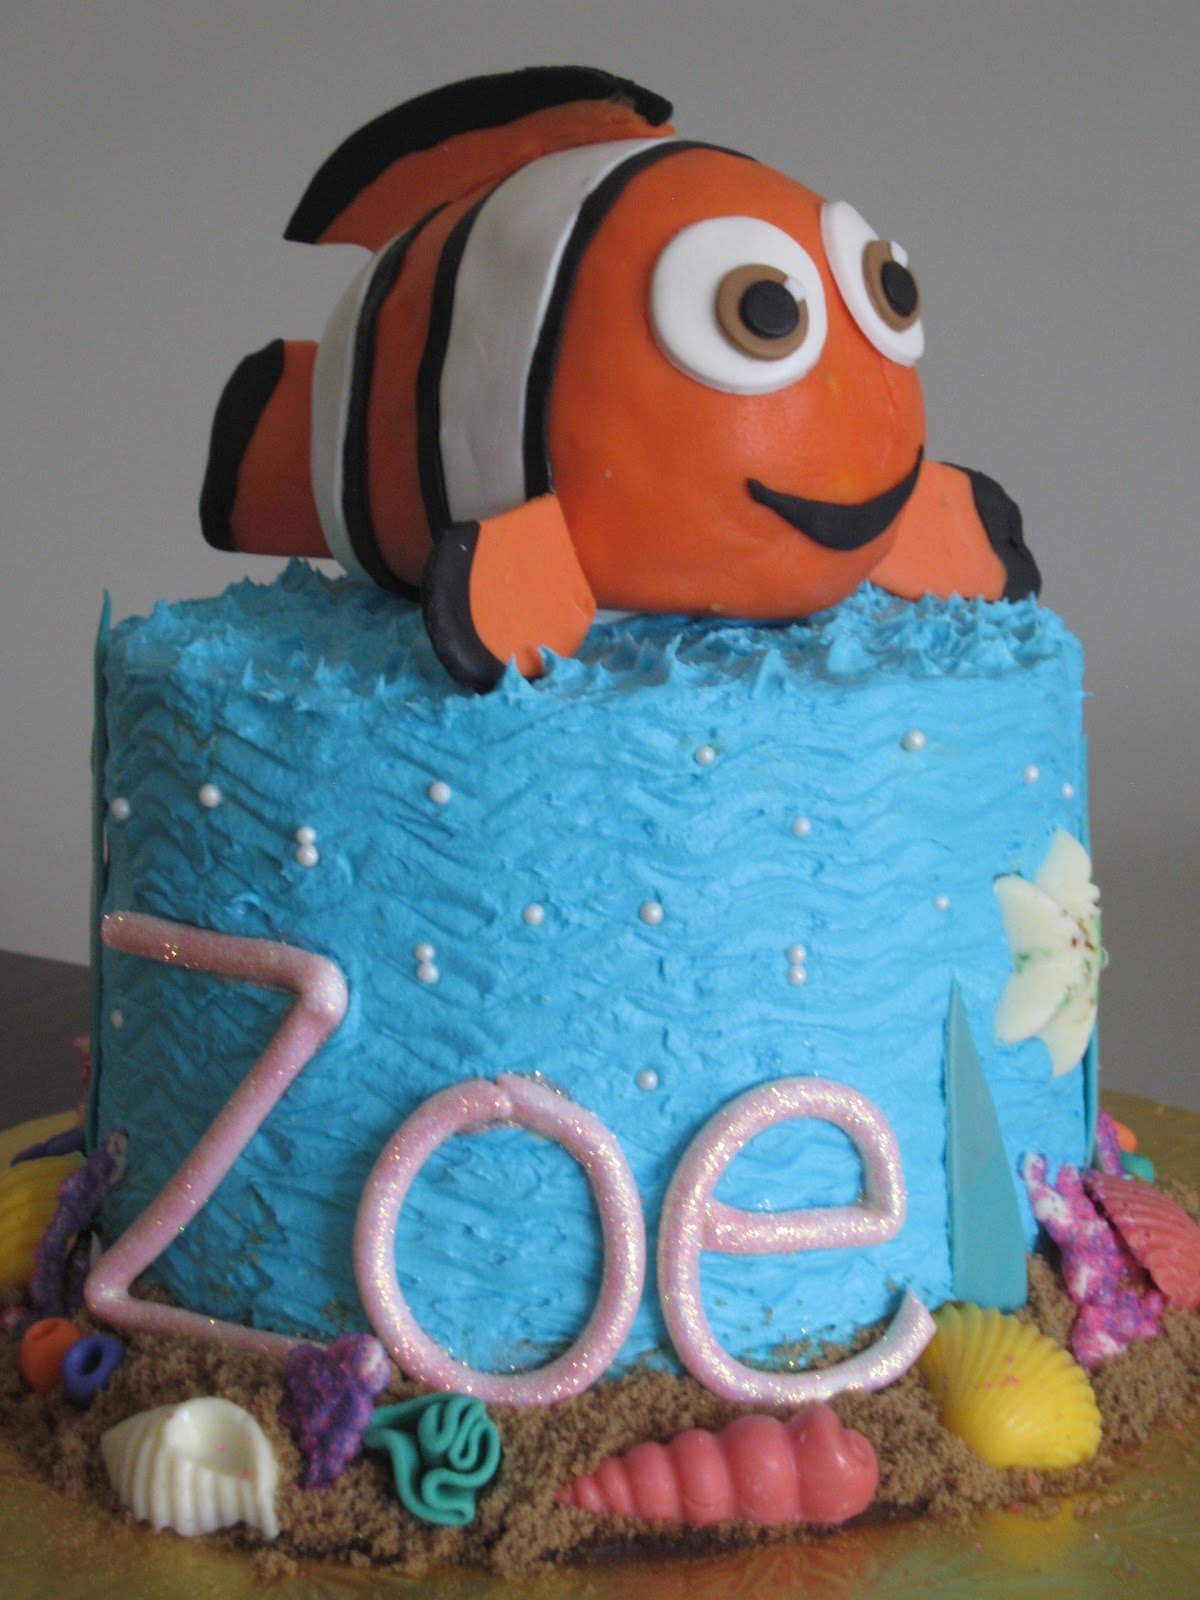 nemo cake template - pin finding nemo smash cake very small for a two year old